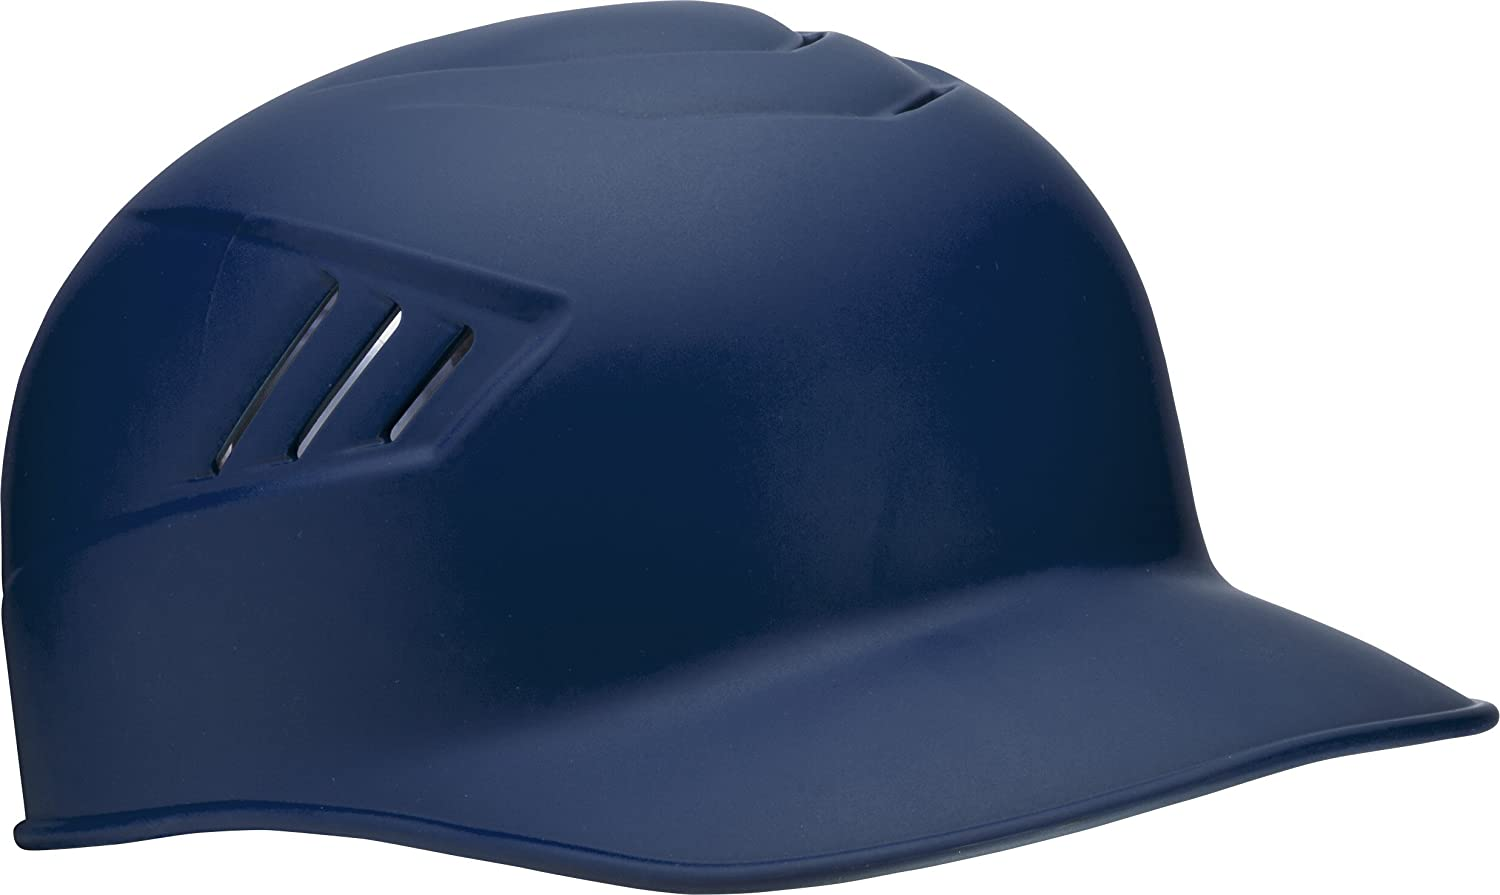 Rawlings Coolflo Matte Style Alpha Trust low-pricing Sized Base Coach Helmet